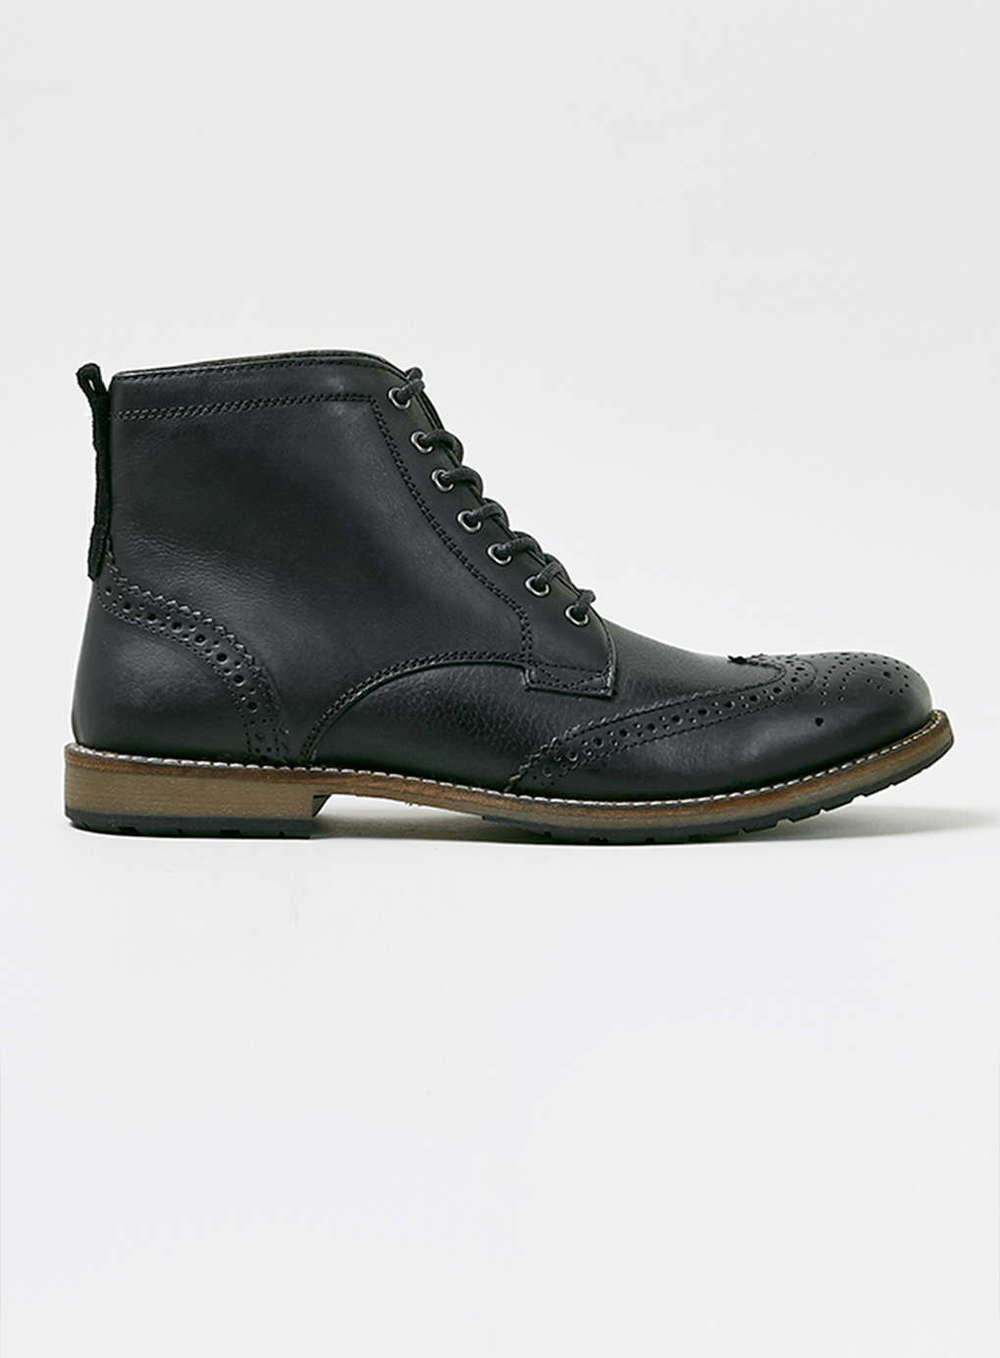 Topman Black Brogue Boots